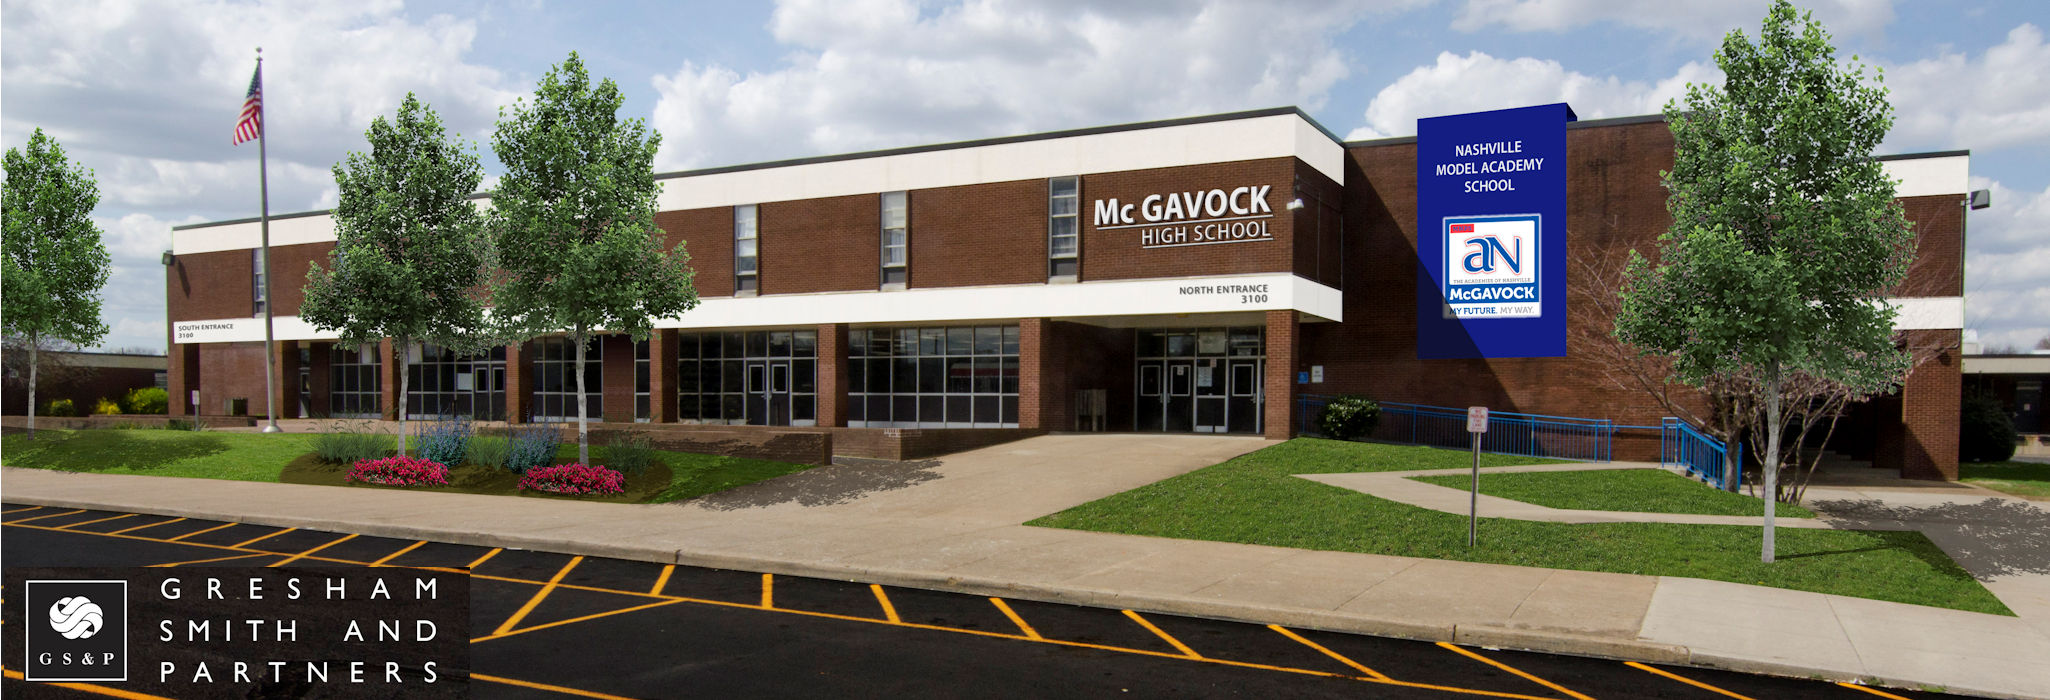 McGavock High School with Jeff Syracuse Metro Council District 15